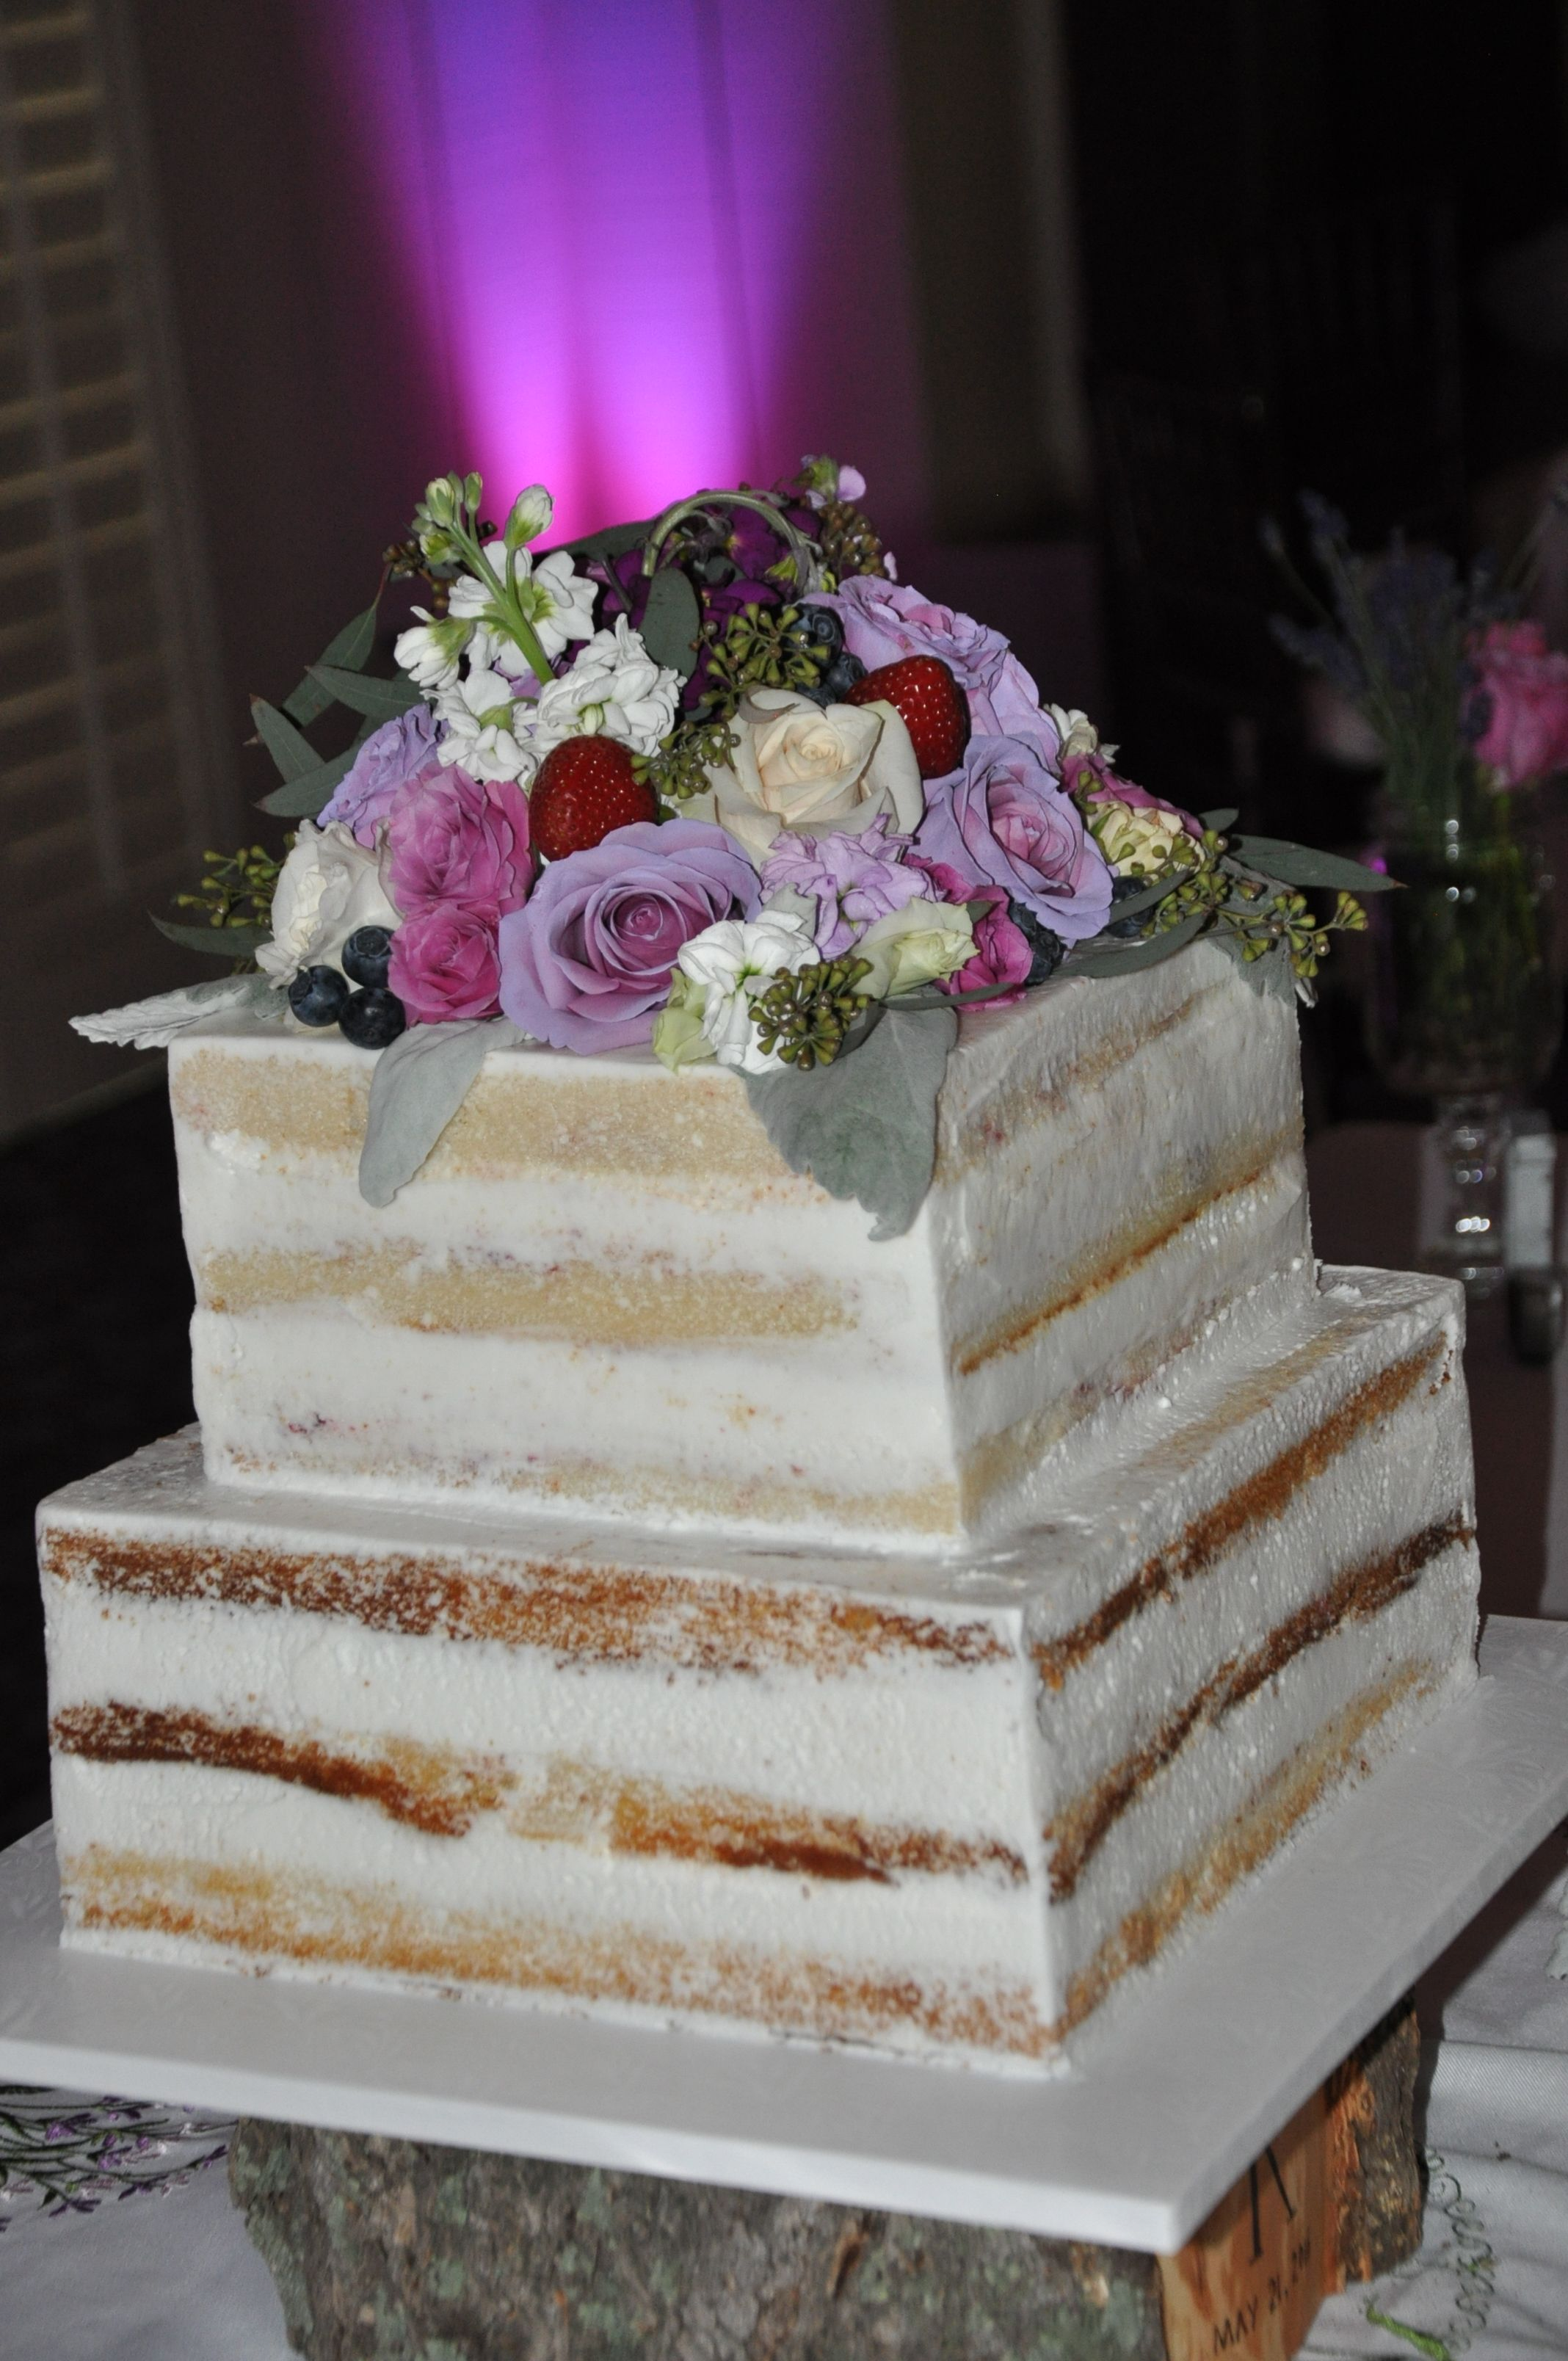 Shoprite Wedding Cakes : shoprite, wedding, cakes, Ranch, Events, Cakes